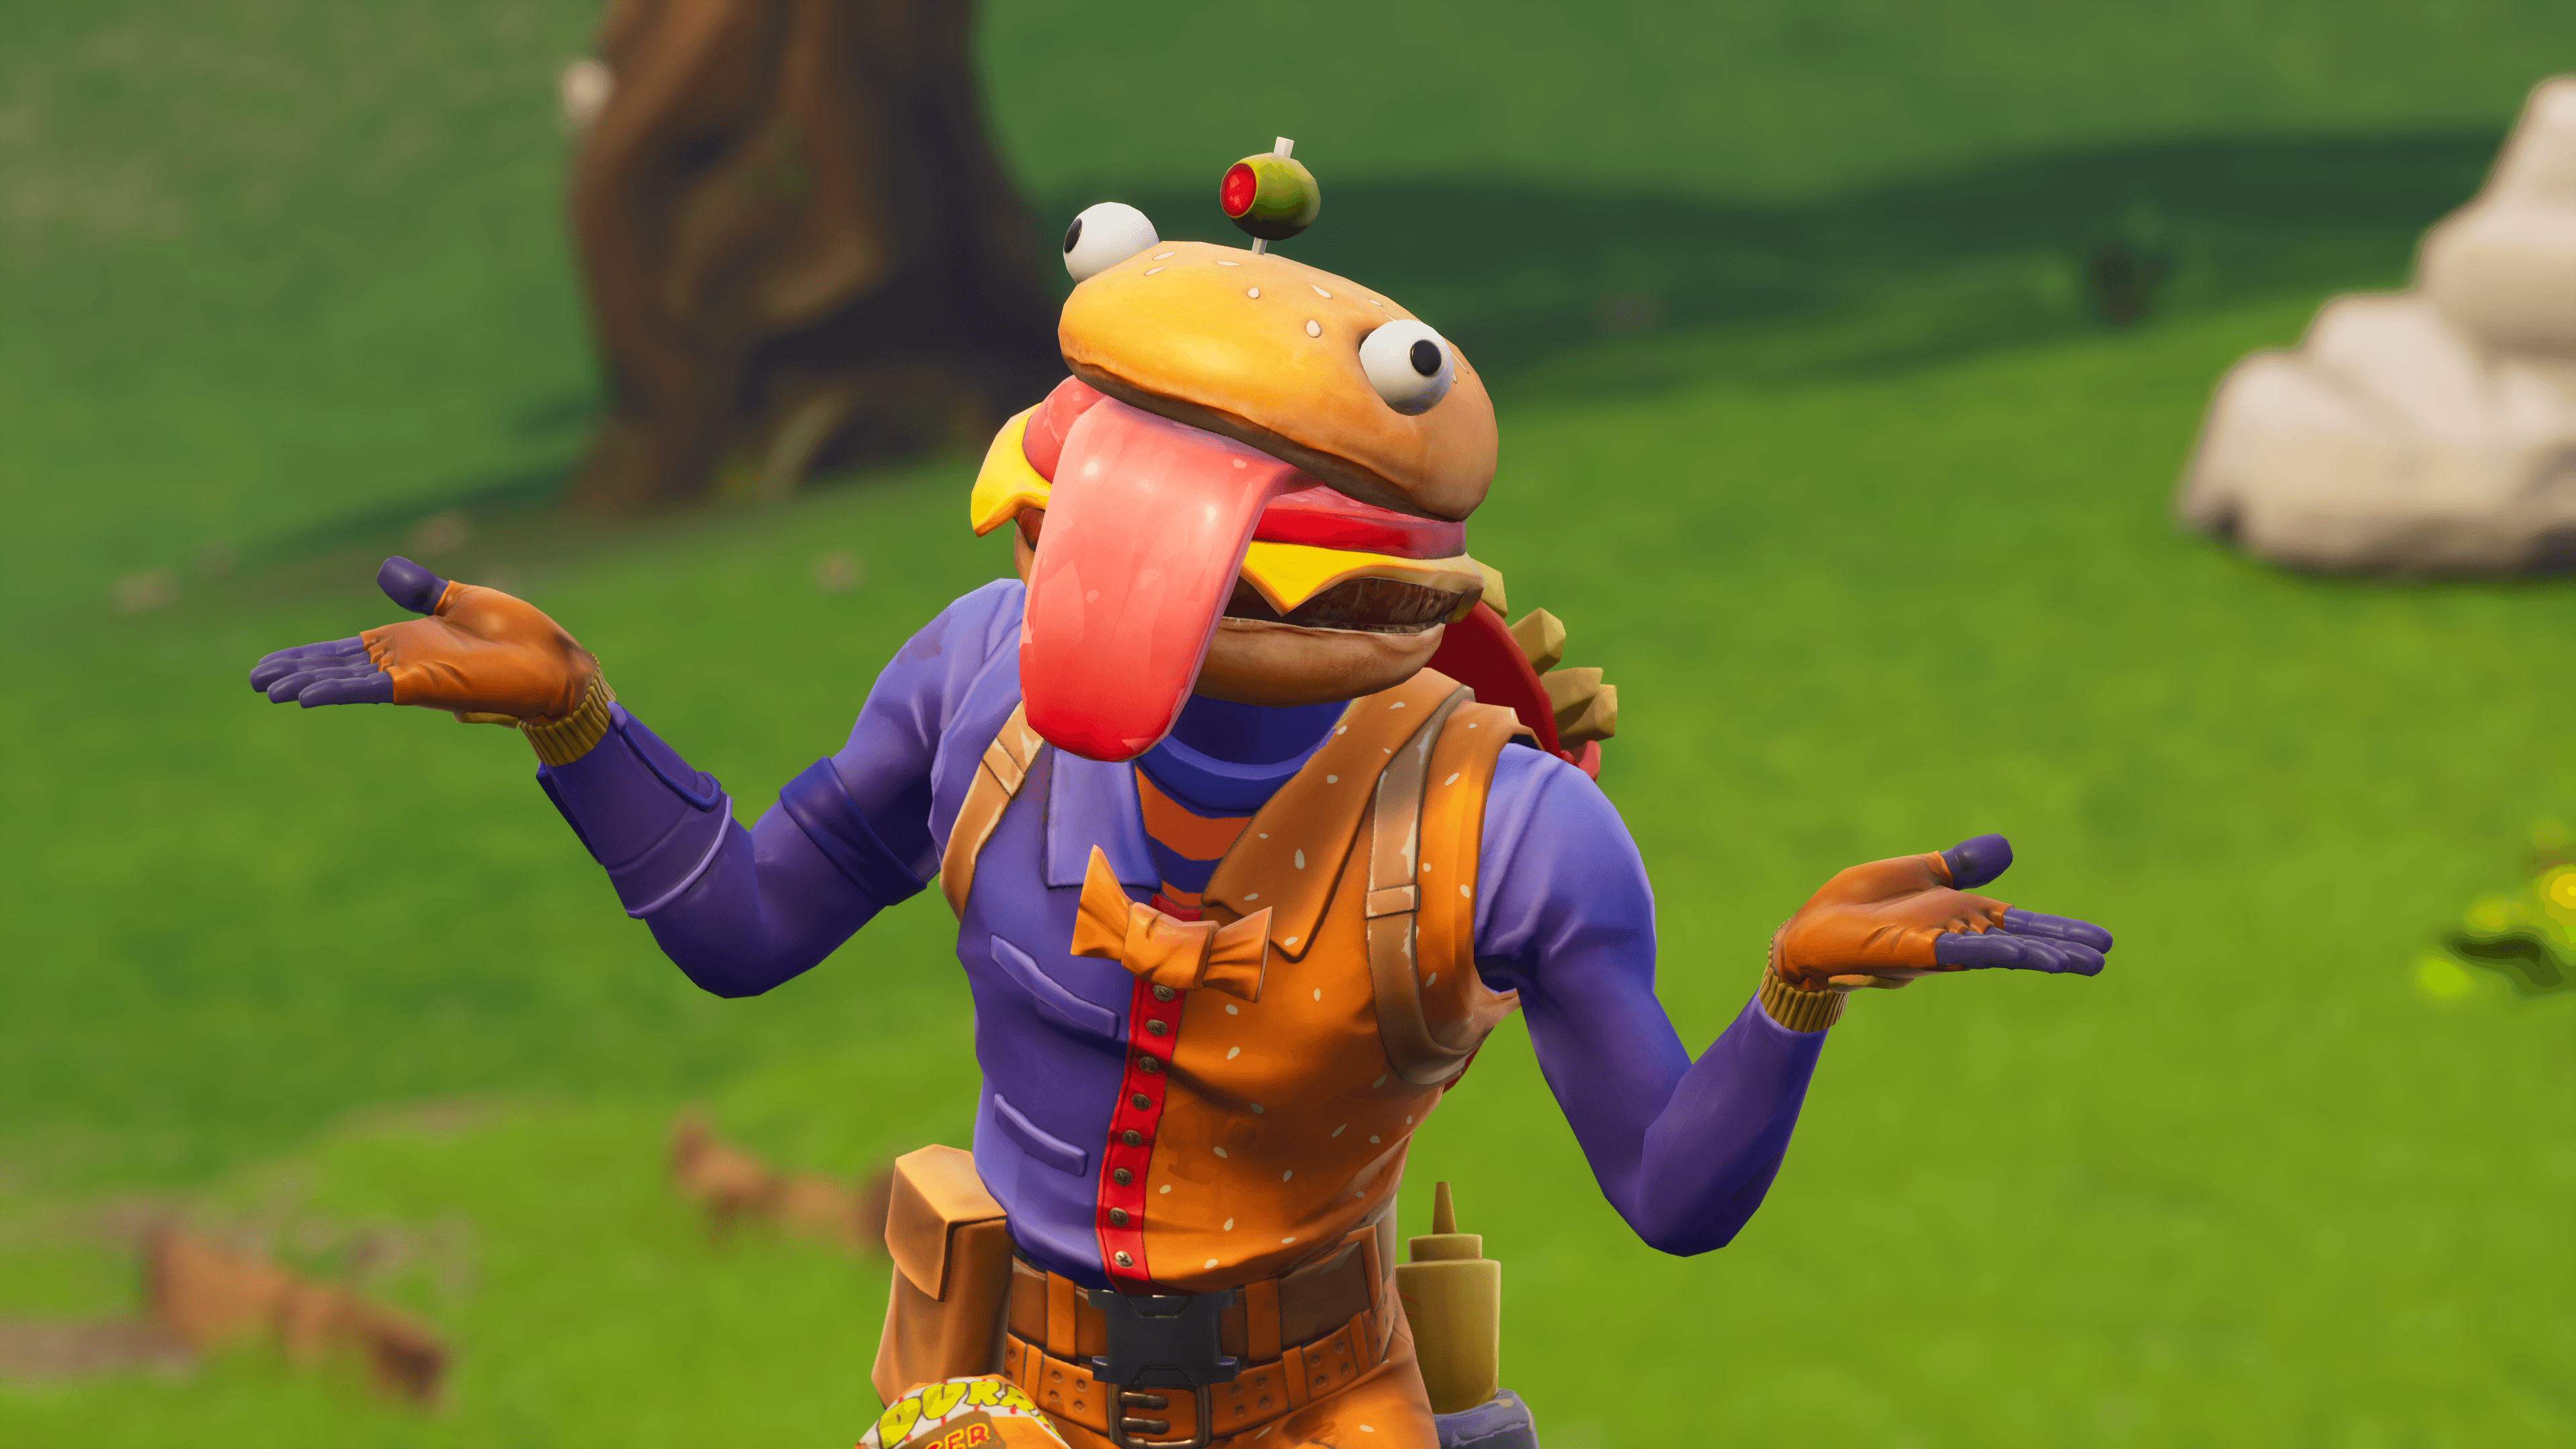 4k wallpaper of Beef Boss and the new emote. : FortNiteBR